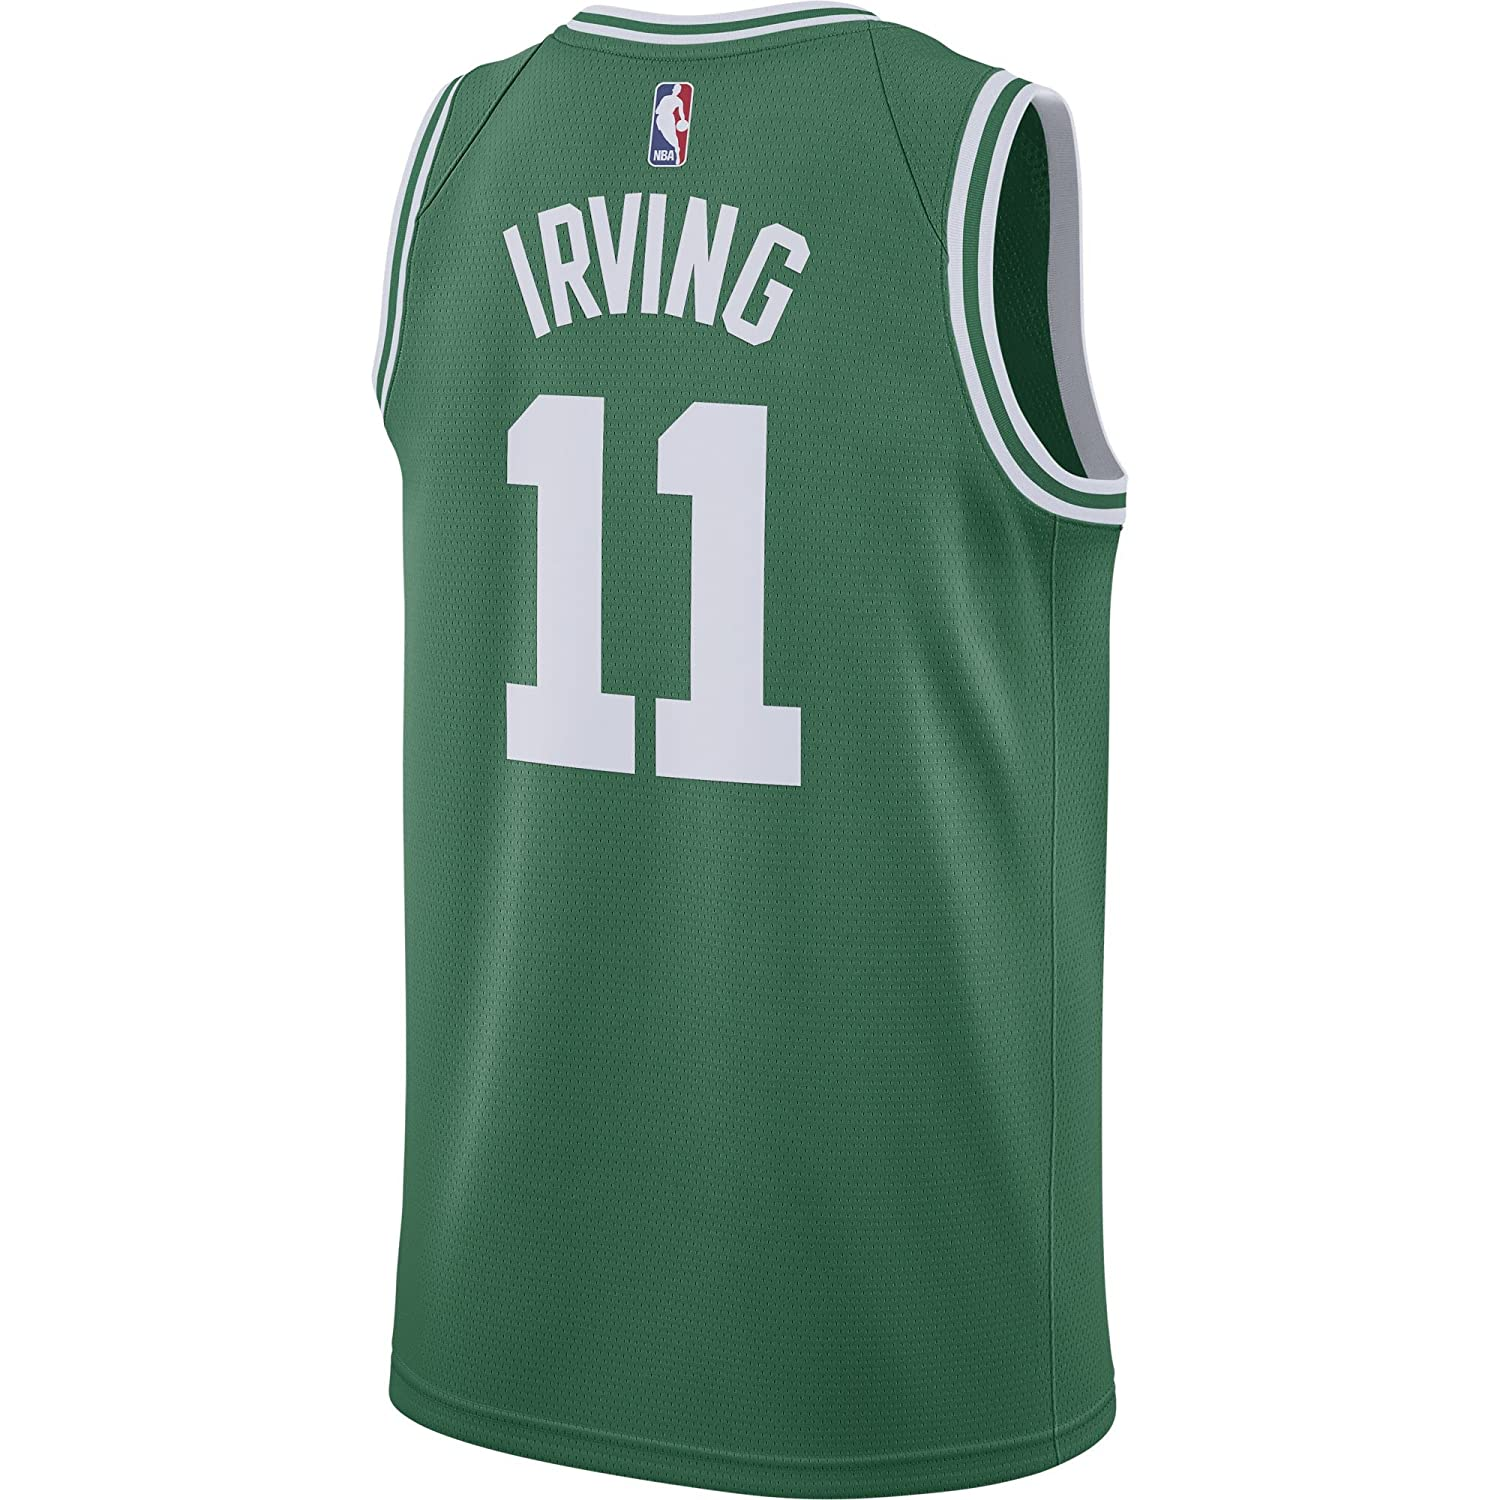 Nike NBA Boston Celtics Kyrie Irving 11 2017 2018 Icon Edition Jersey Oficial Away, Camiseta de Niño: Amazon.es: Ropa y accesorios